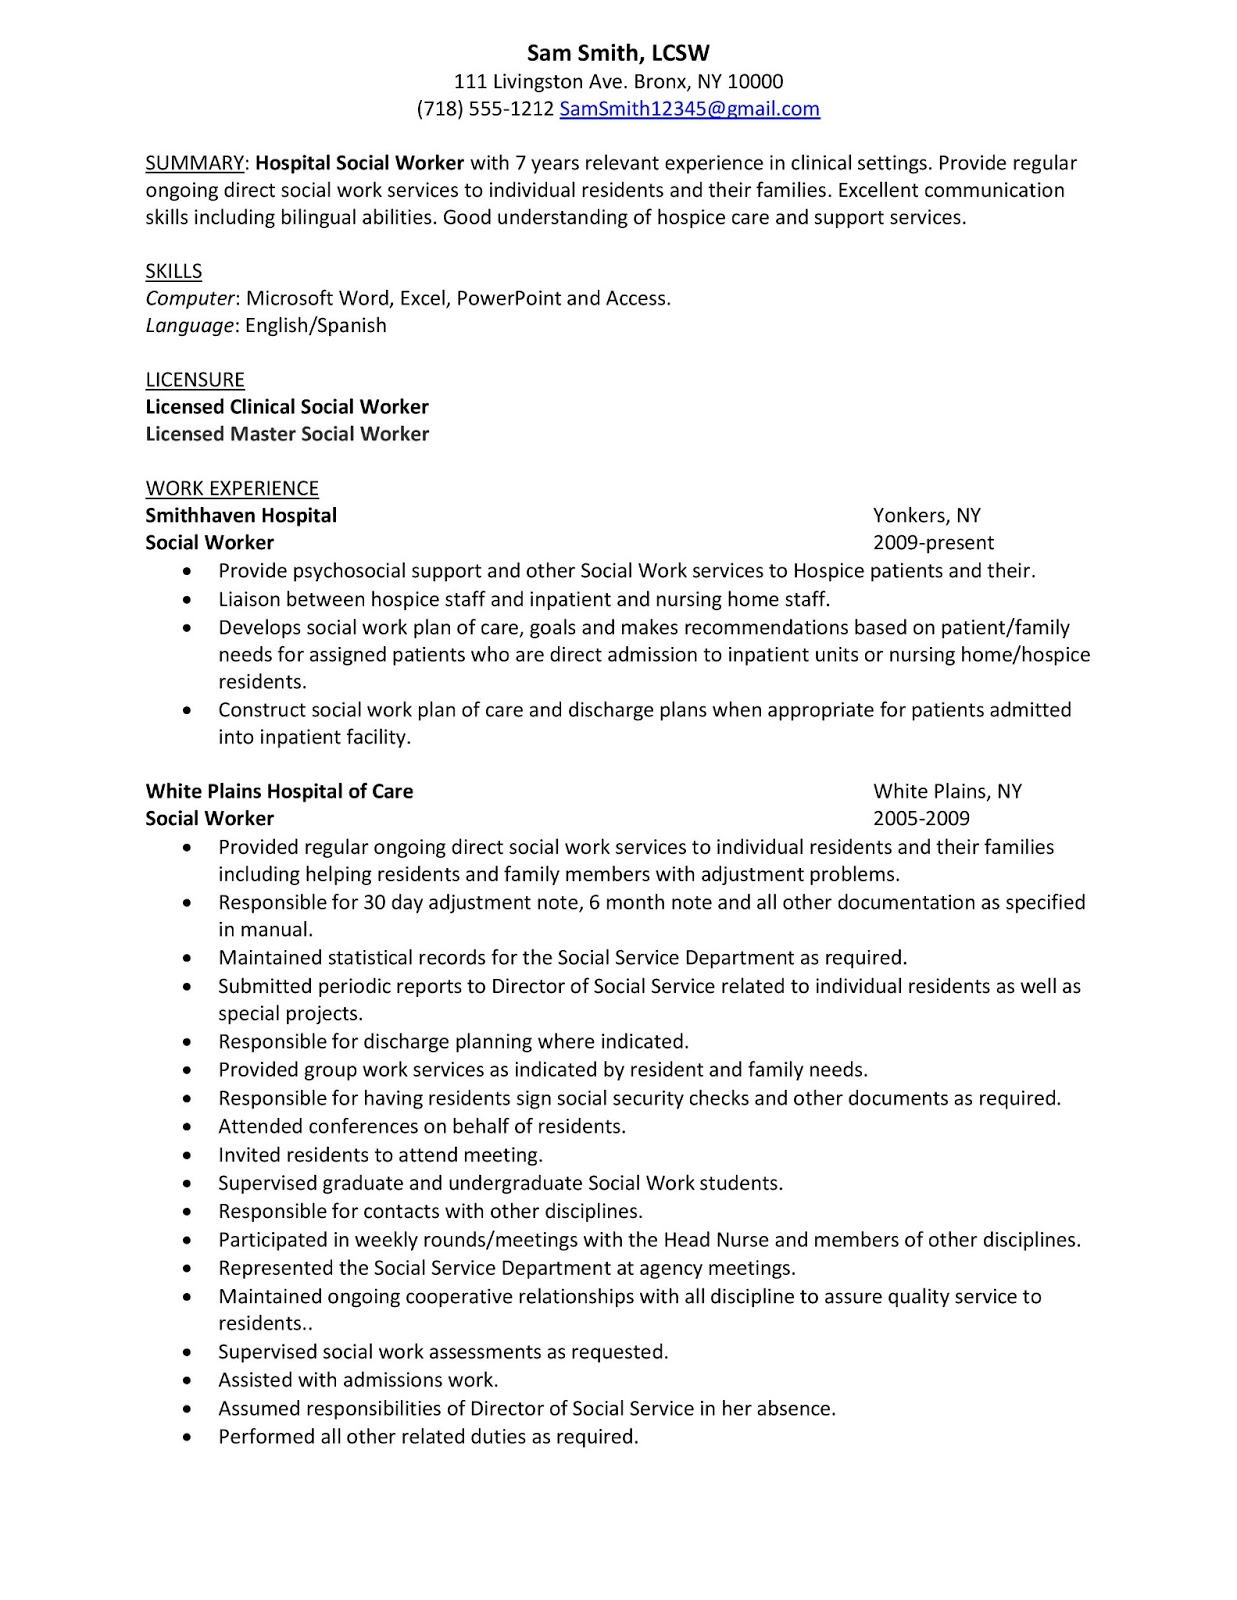 social work sample resume Oylekalakaarico